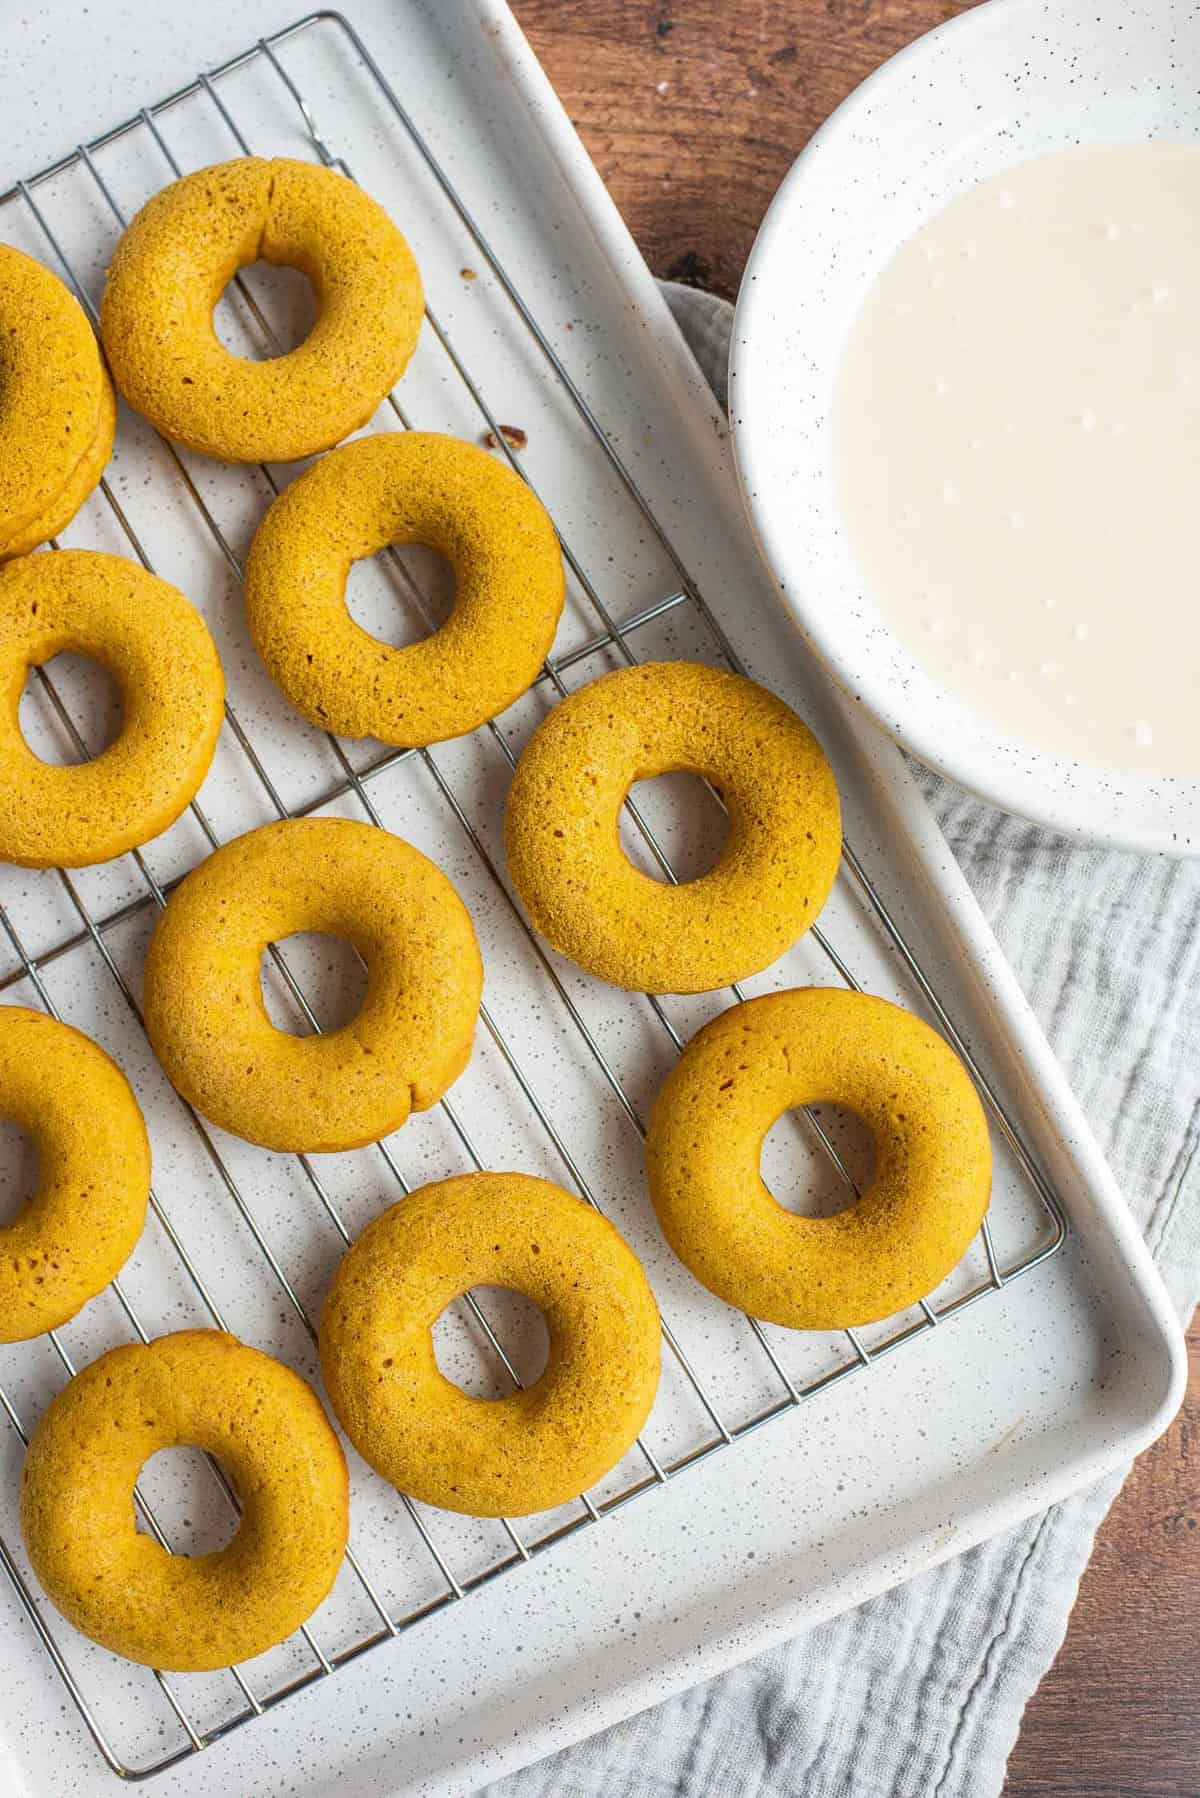 Baked donuts on a cooling rack, bowl of glaze next to it.